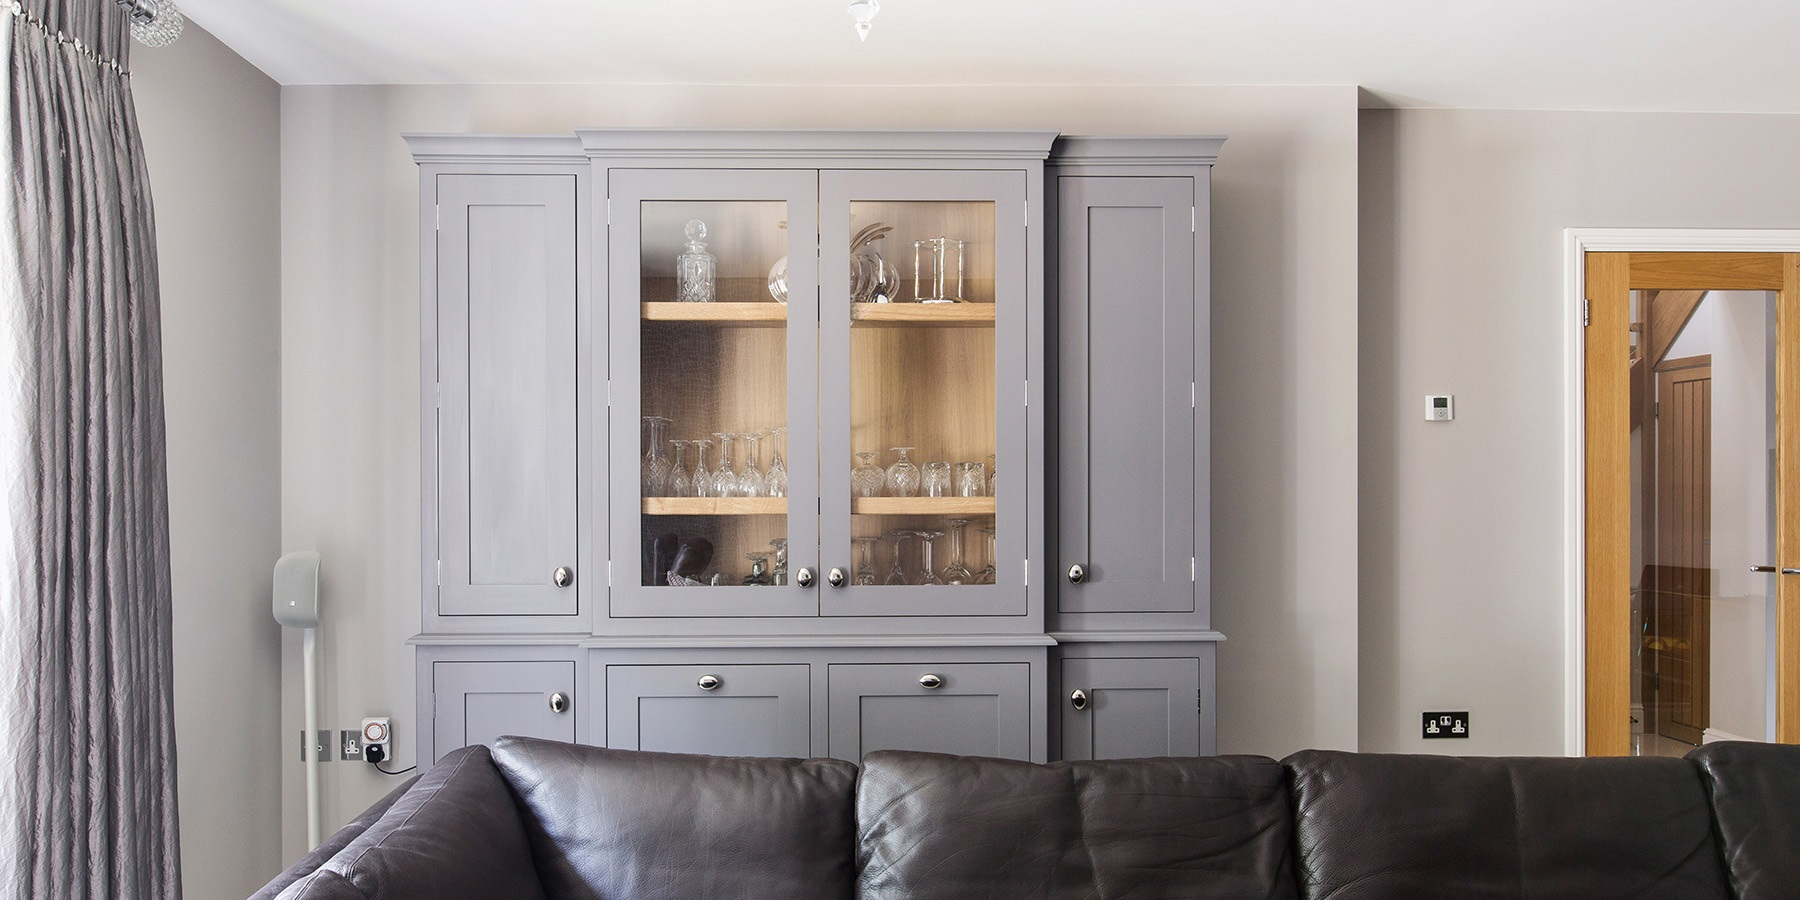 Bespoke Dresser Unit - Handmade grey dresser unit with glass shelves and doors.